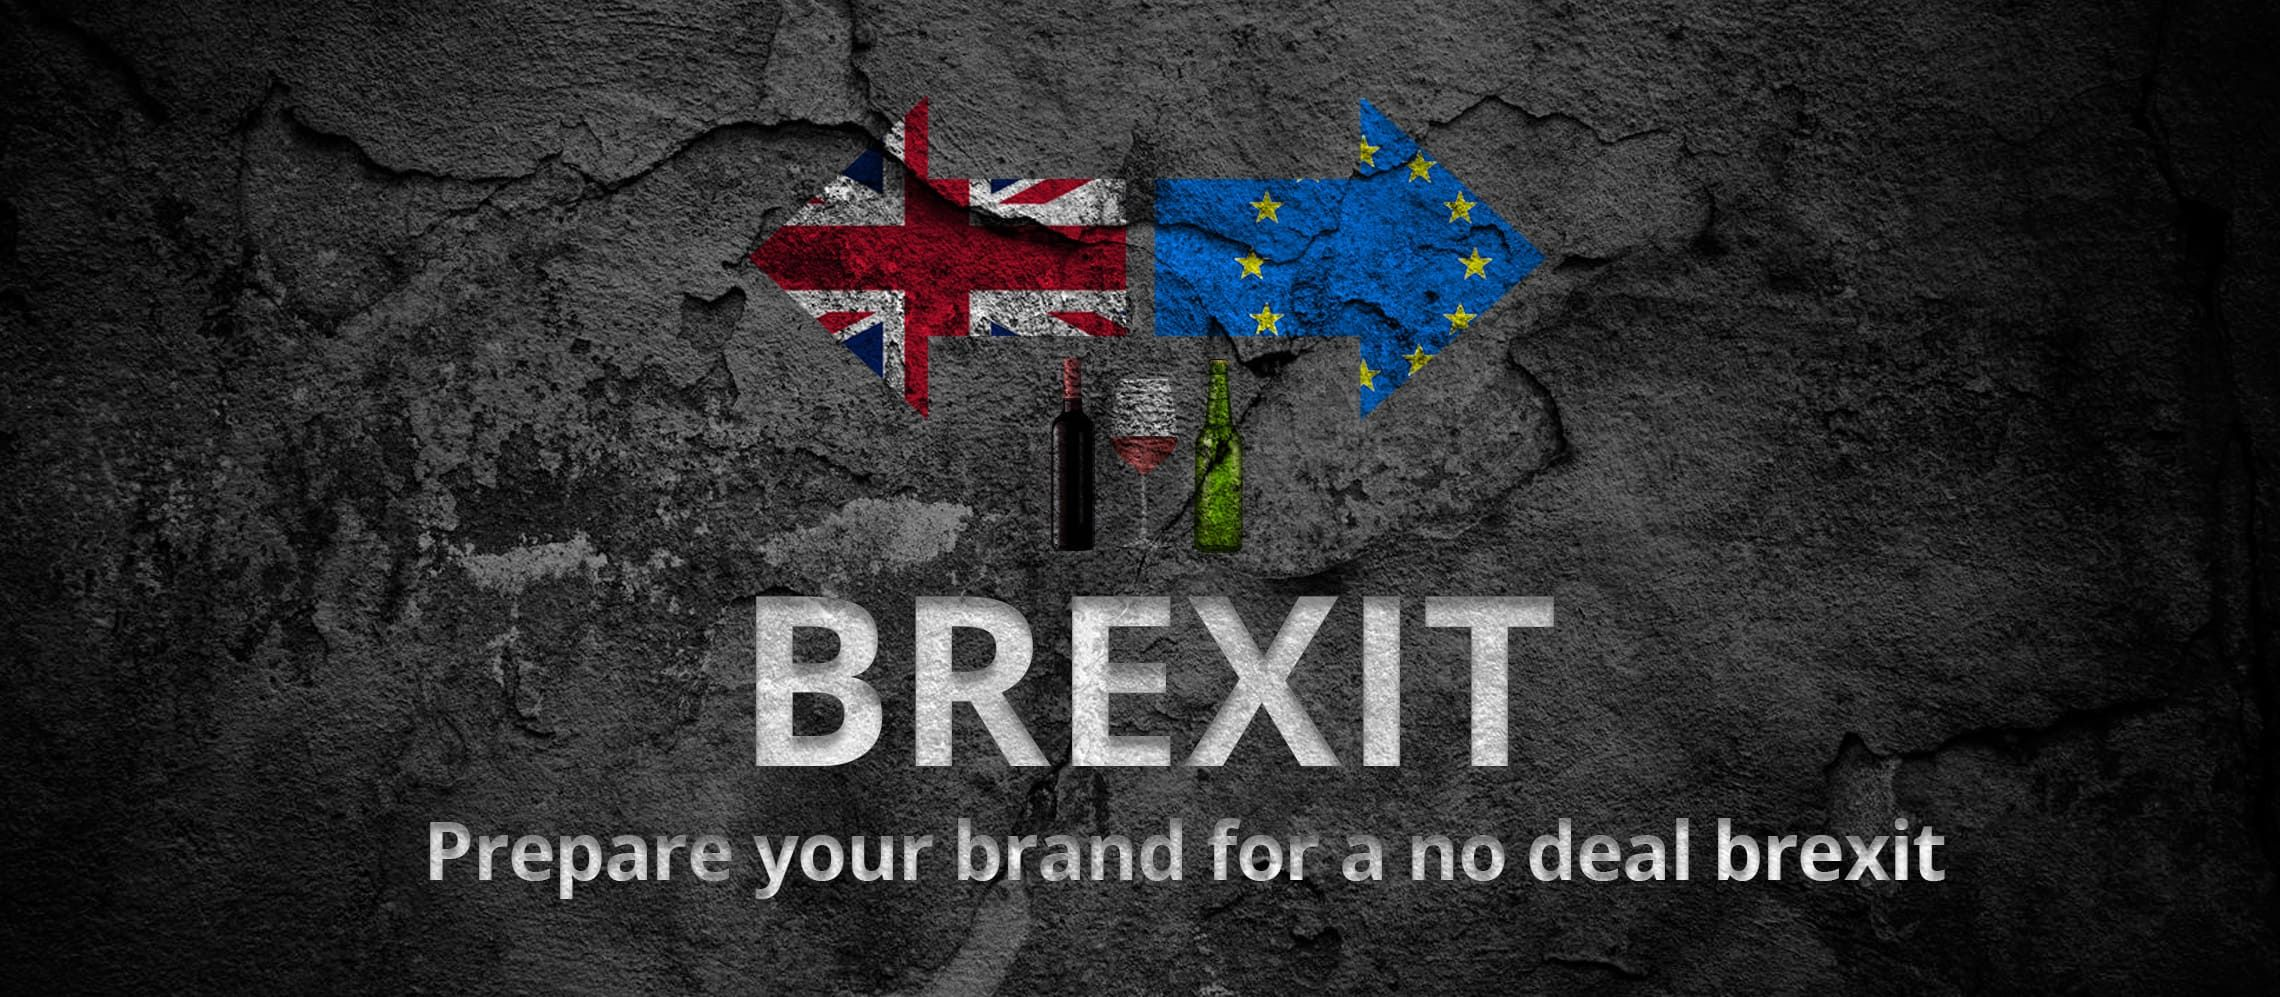 Photo for: How to Get into the UK Market Without Brexit Being a Problem